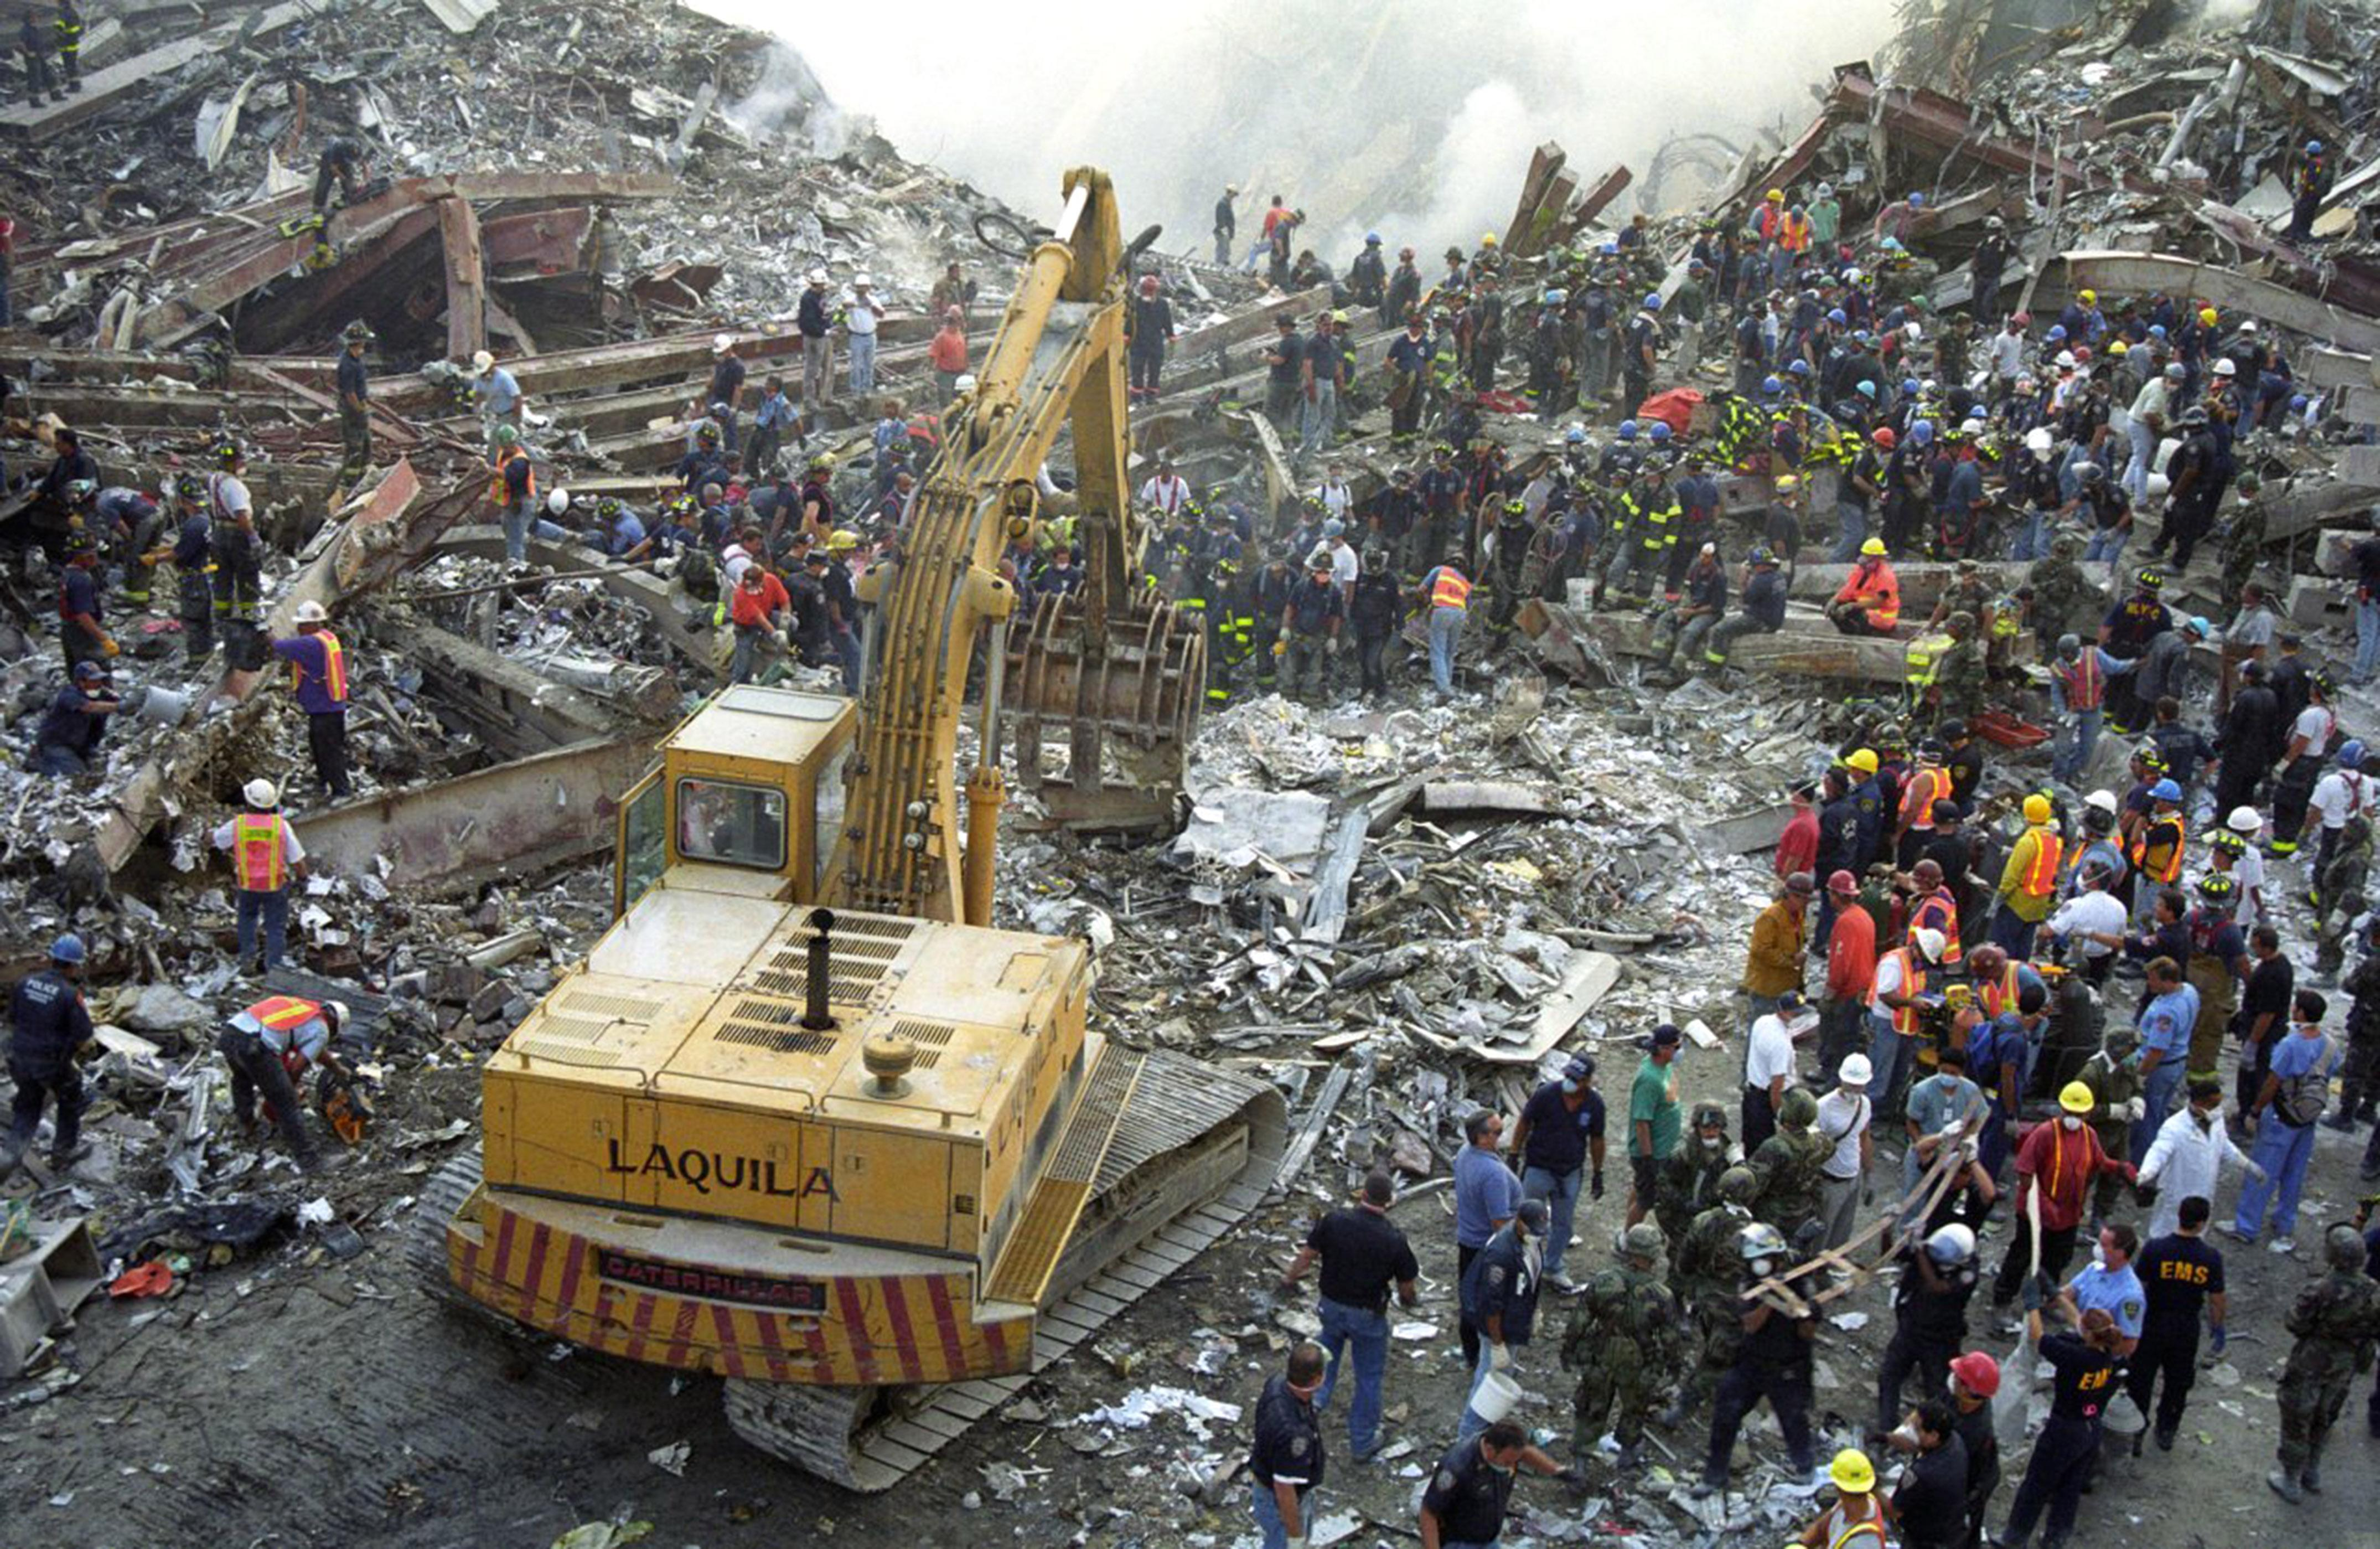 A digger clearing rubble as emergency services personell search for survivors. (Caters)